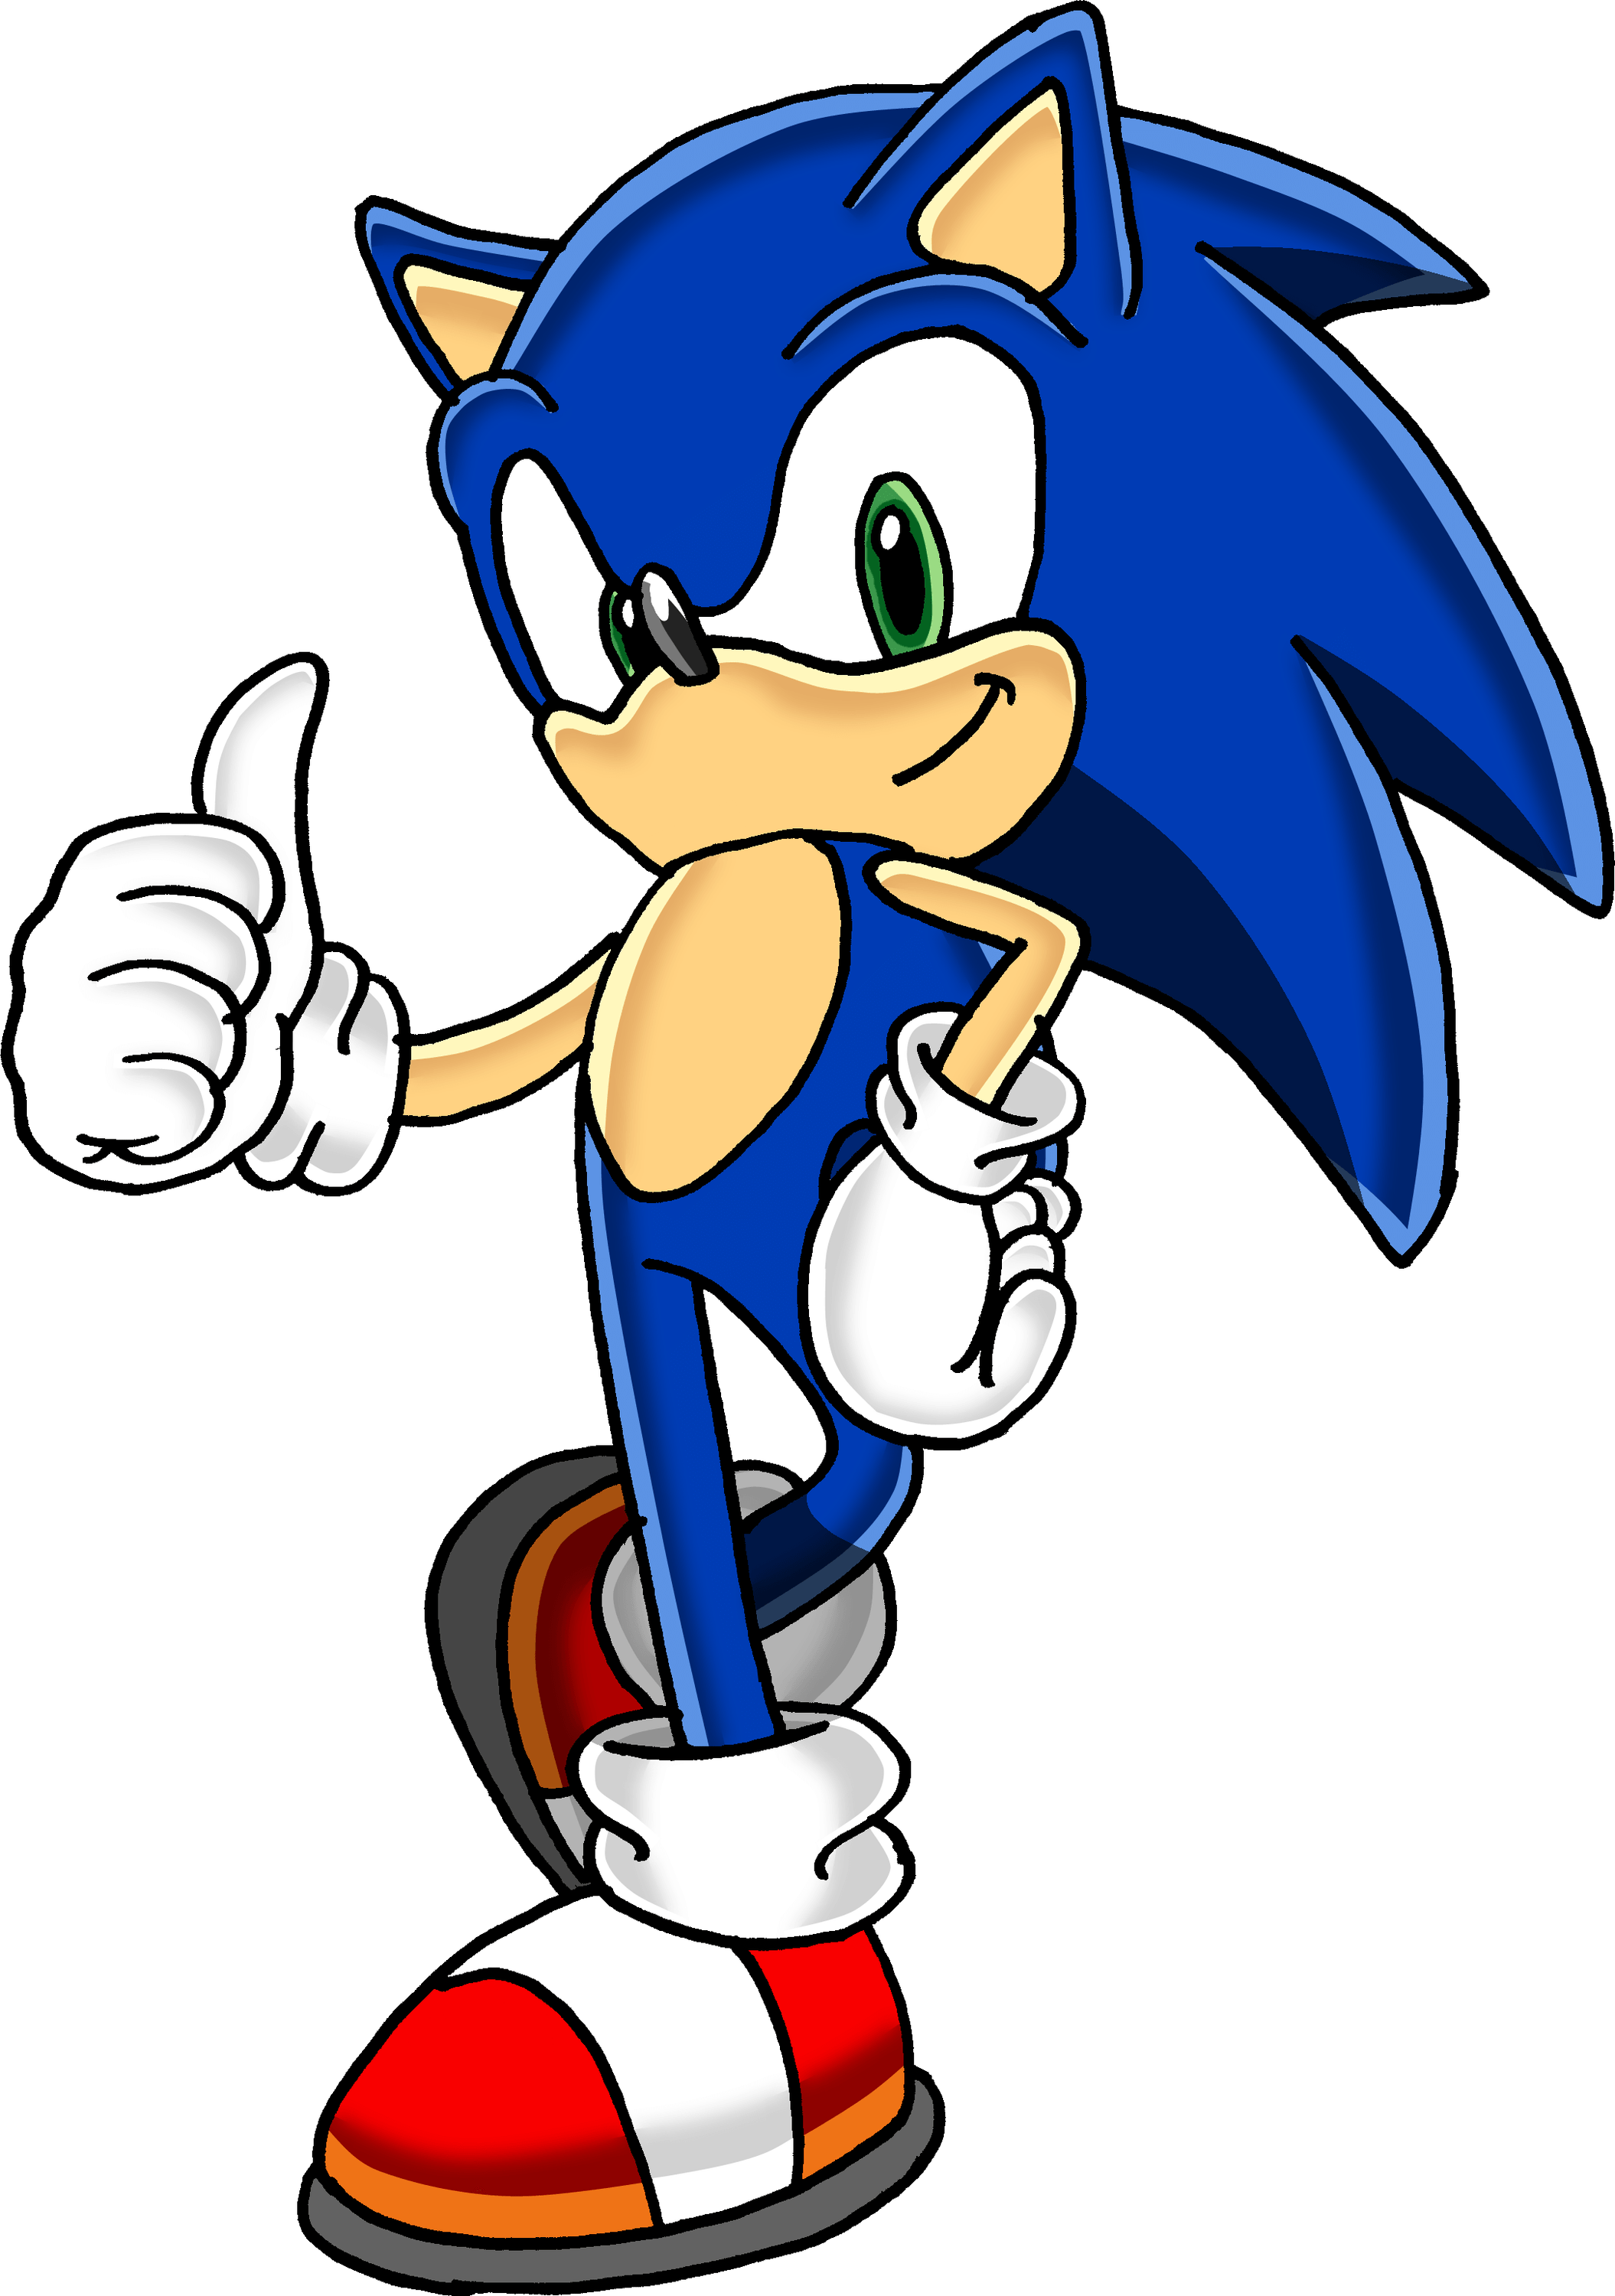 Hedgehog clipart animated. Sonic jumping transparent png